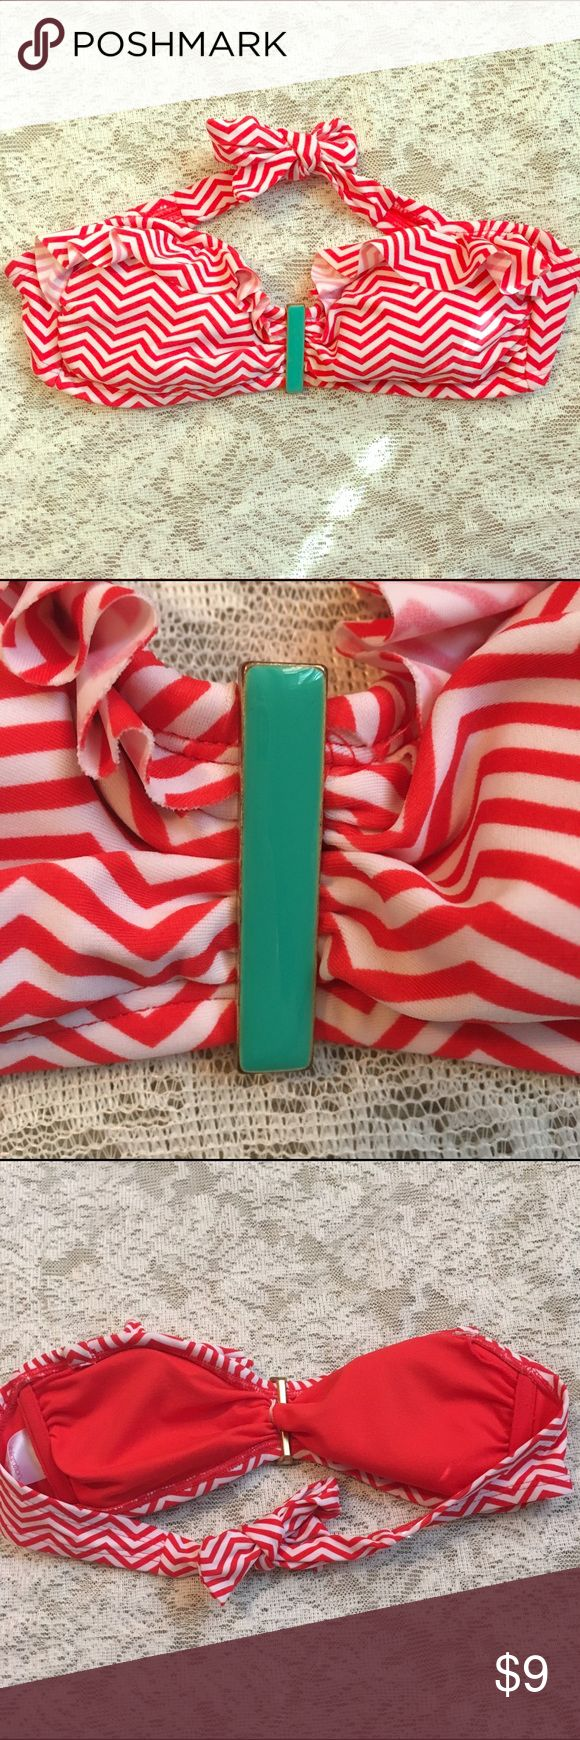 Xhilaration chevron bandeau bikini top Super cute for summer, this ruffled bandeau top has a chevron pattern, with a teal/gold metal bar in the middle that adds a fun pop of color. Tie back. No pilling or flaws! Color is an orangey red Xhilaration Swim Bikinis